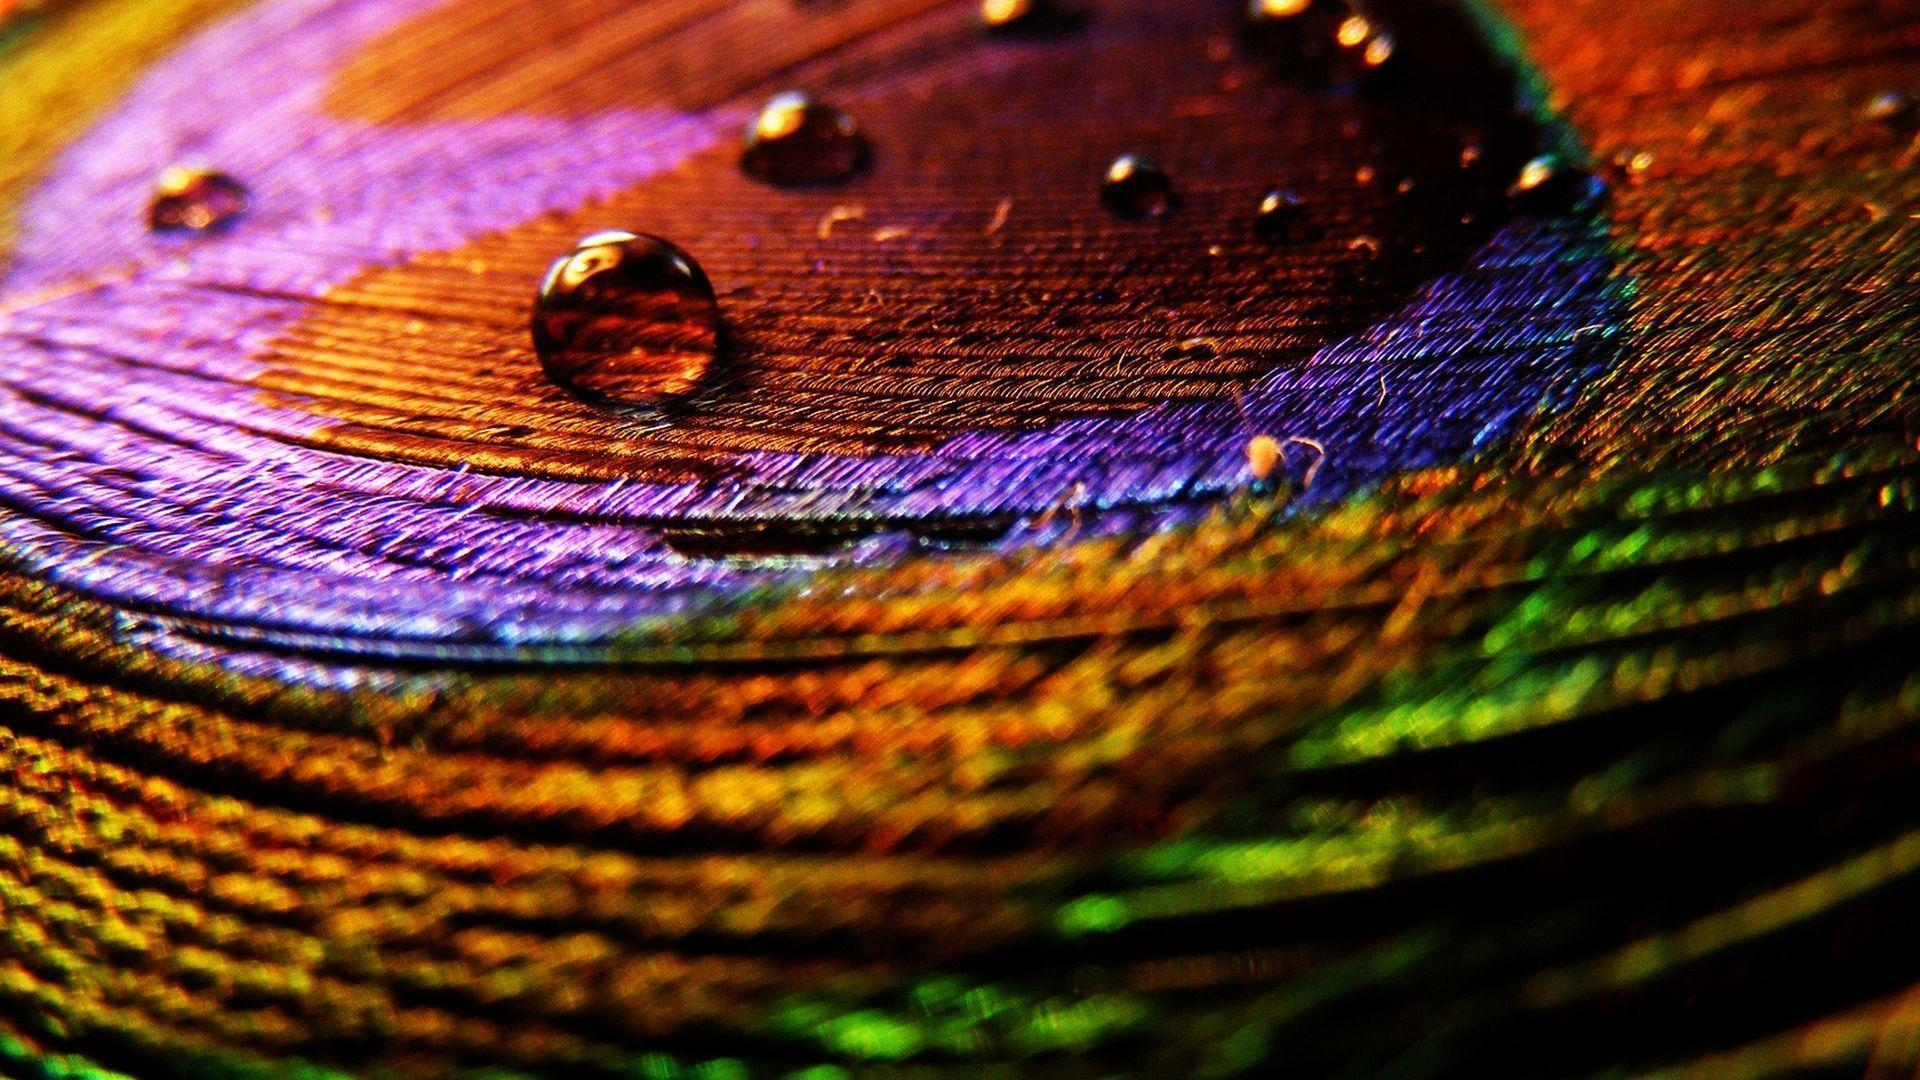 Wallpapers Of Peacock Feathers HD 2015 1920x1080